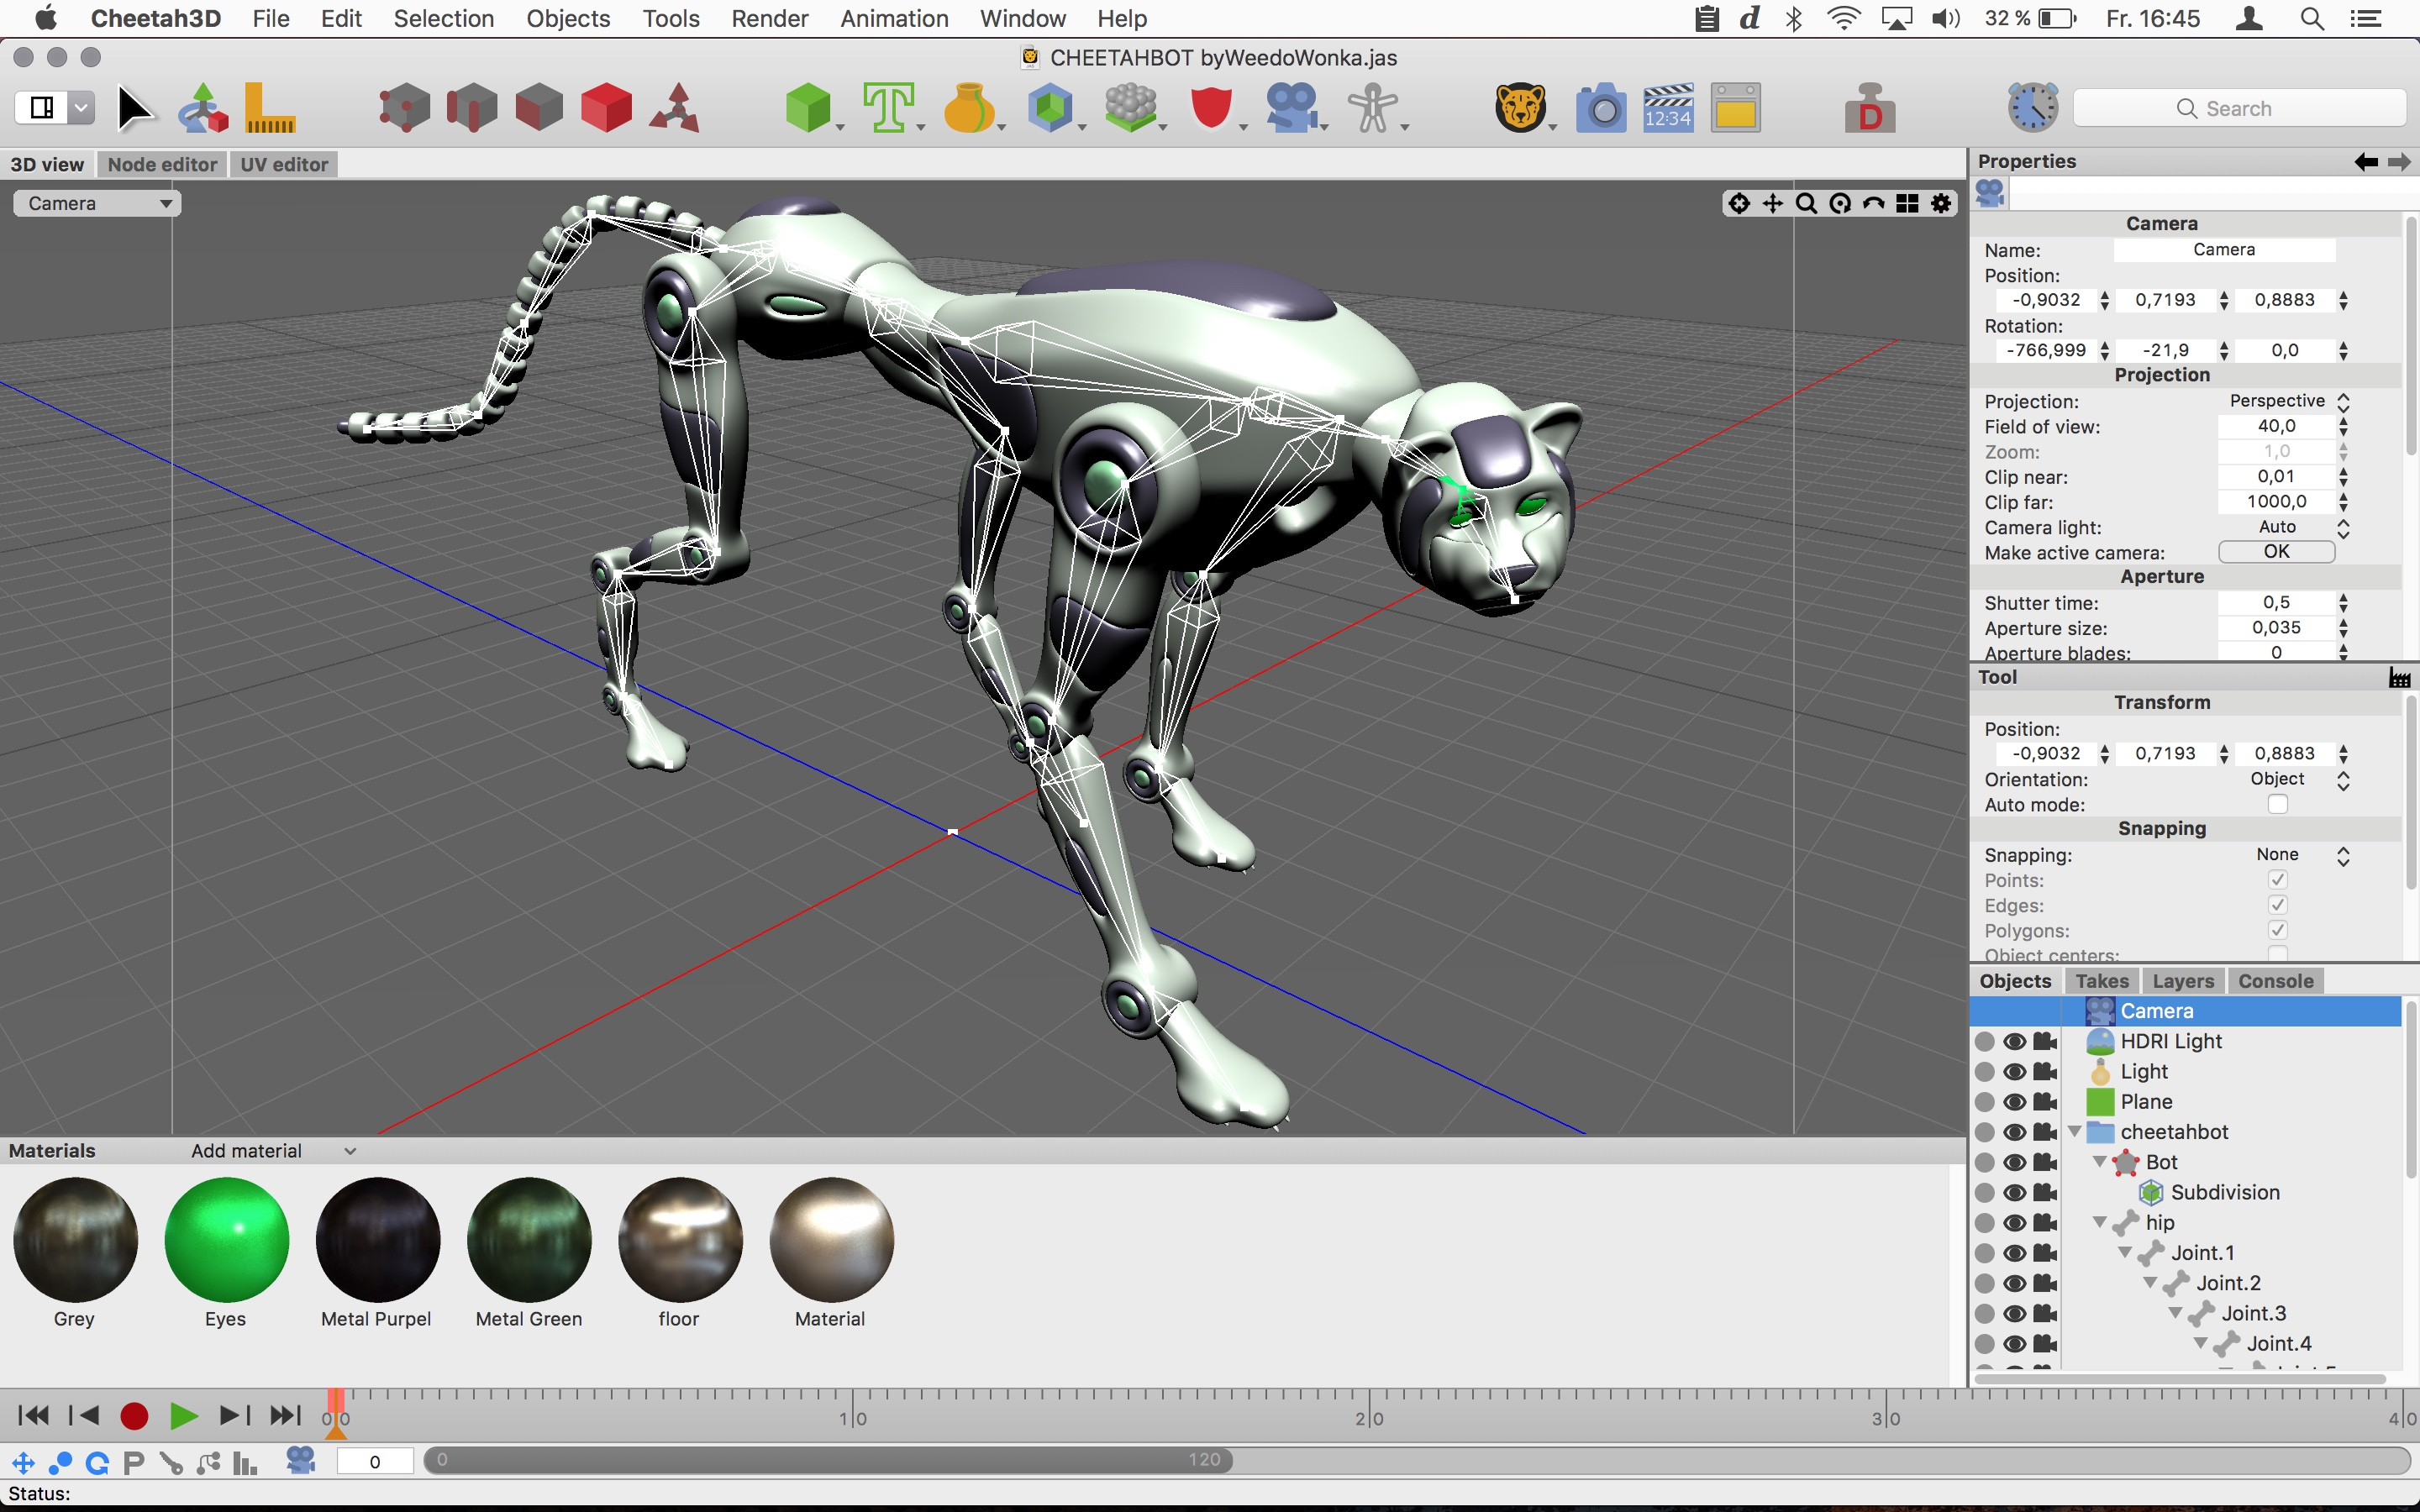 Best 3D Modeling Software for Mac: 3D Printing with Mac OS